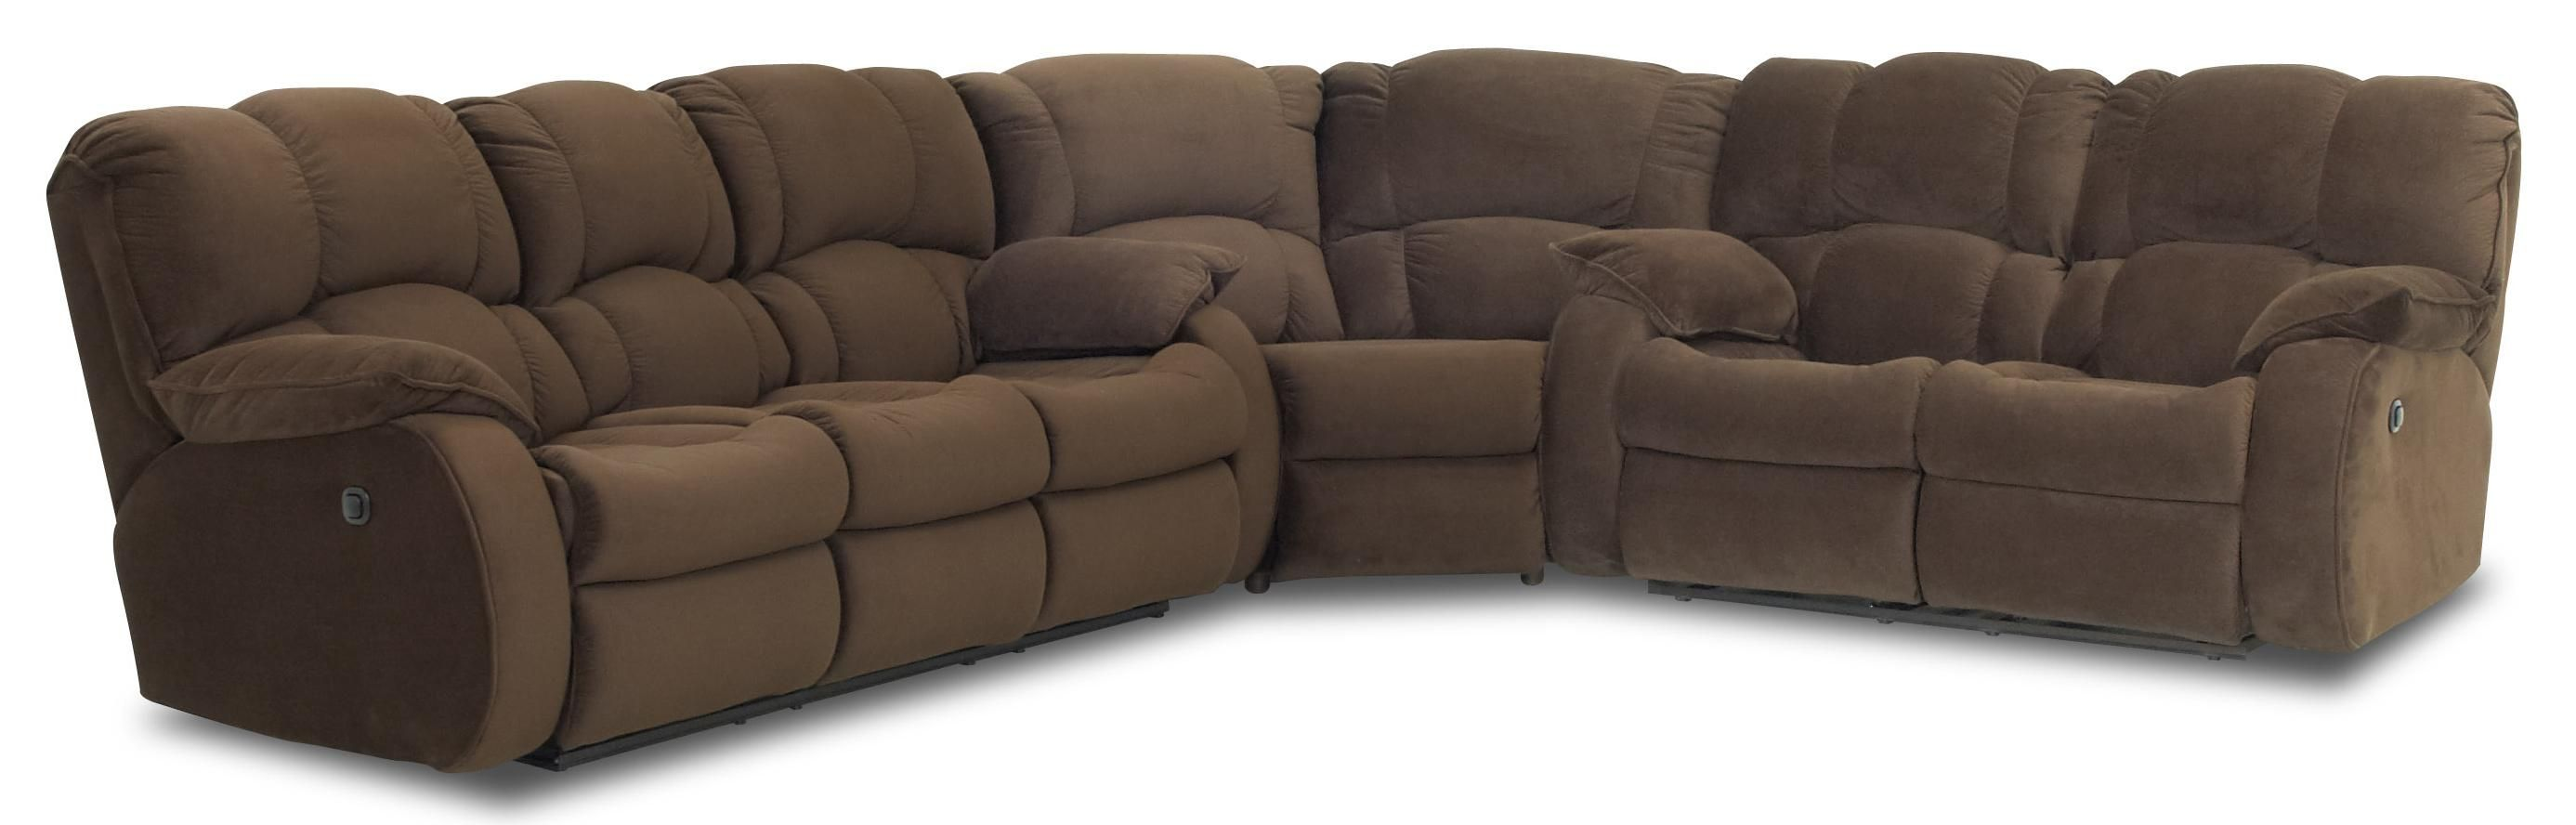 Travis Reclining Sectional by Klaussner Couches